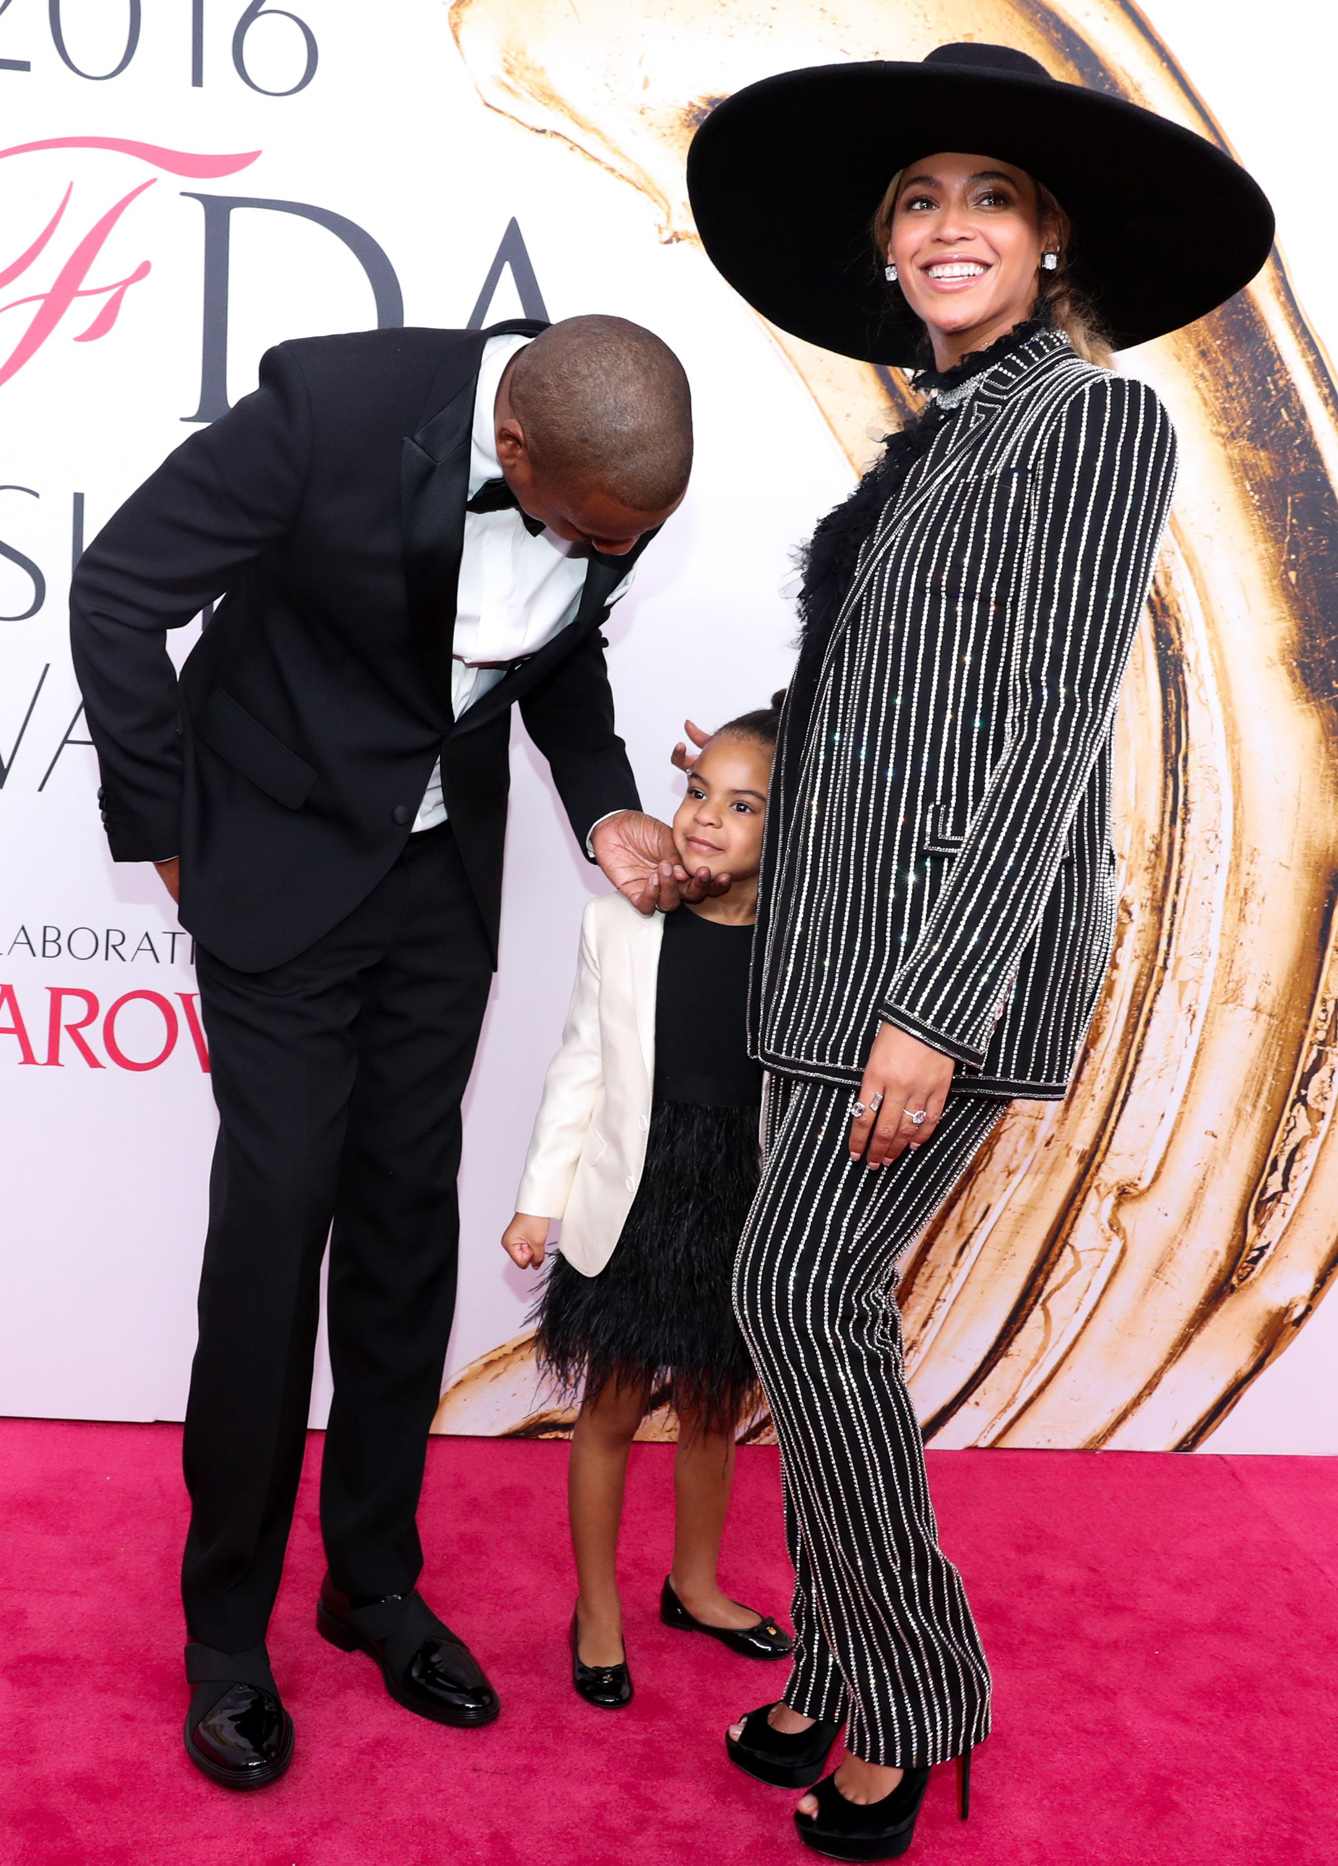 Mandatory Credit: Photo by Neil Rasmus/BFA/REX/Shutterstock (5712373he)